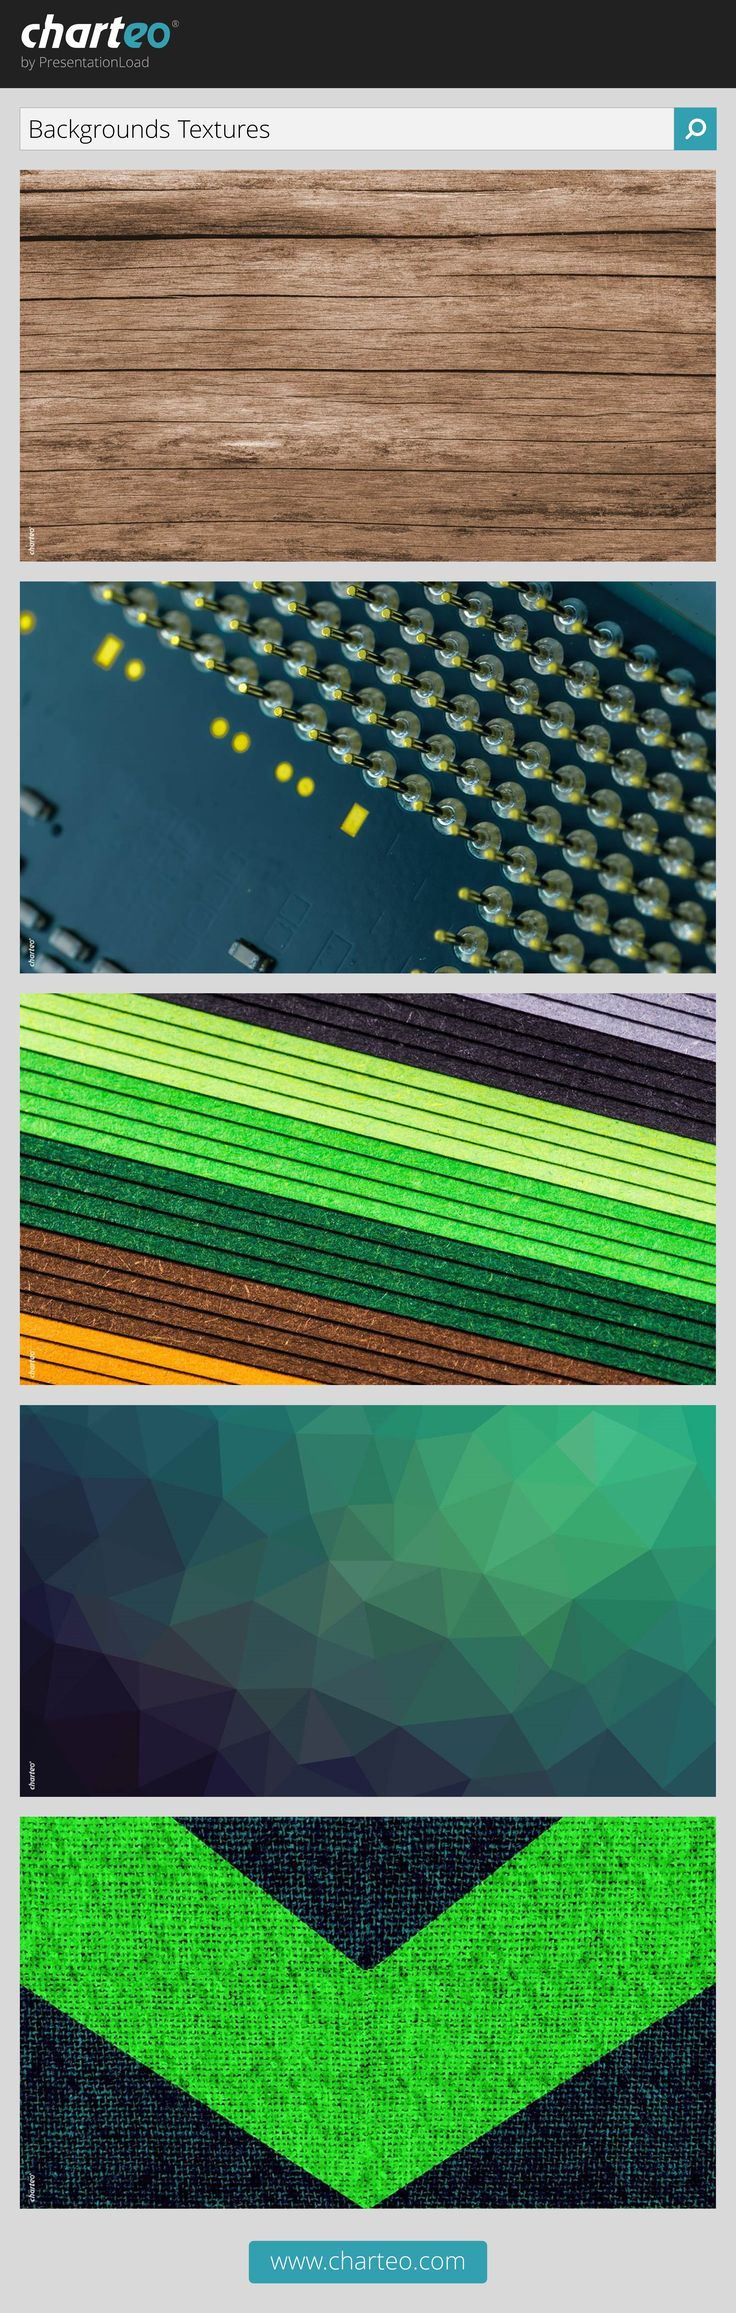 These simple texture slides are excellently usable as background for presentations.